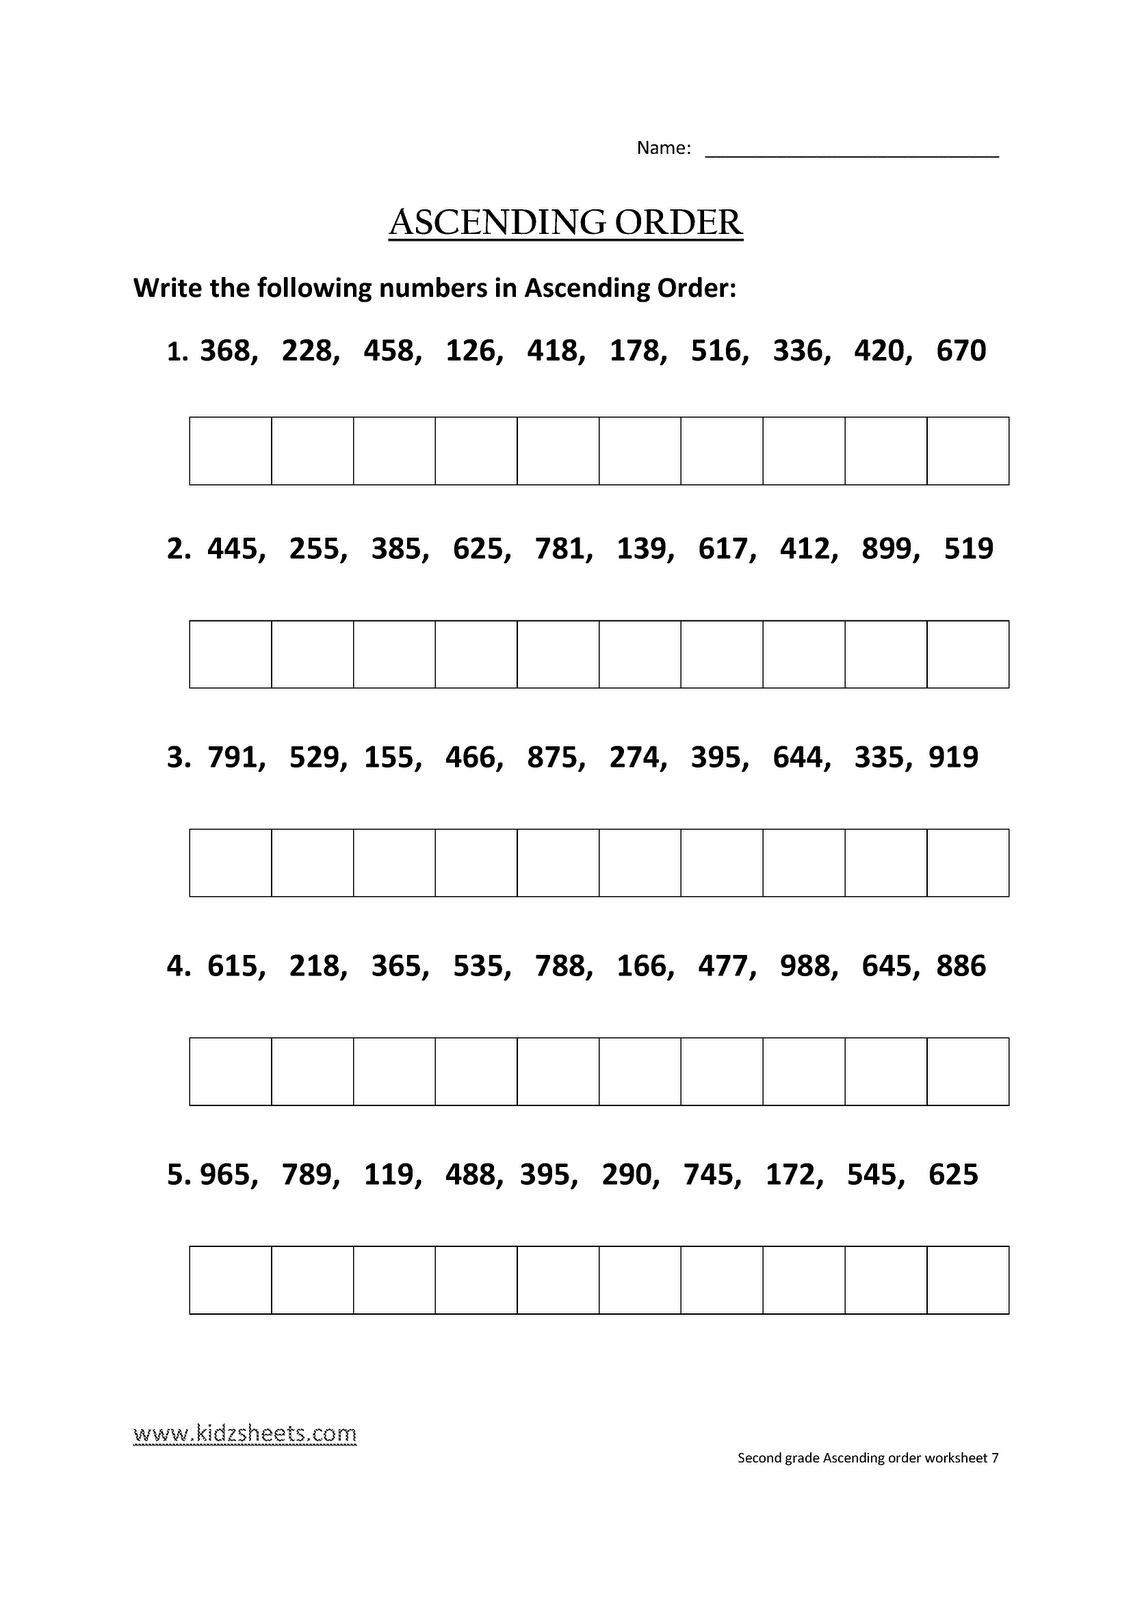 Worksheet Free Worksheets For Grade 2 sgascending7 png free printable worksheets for grade 2 memarchoapraga